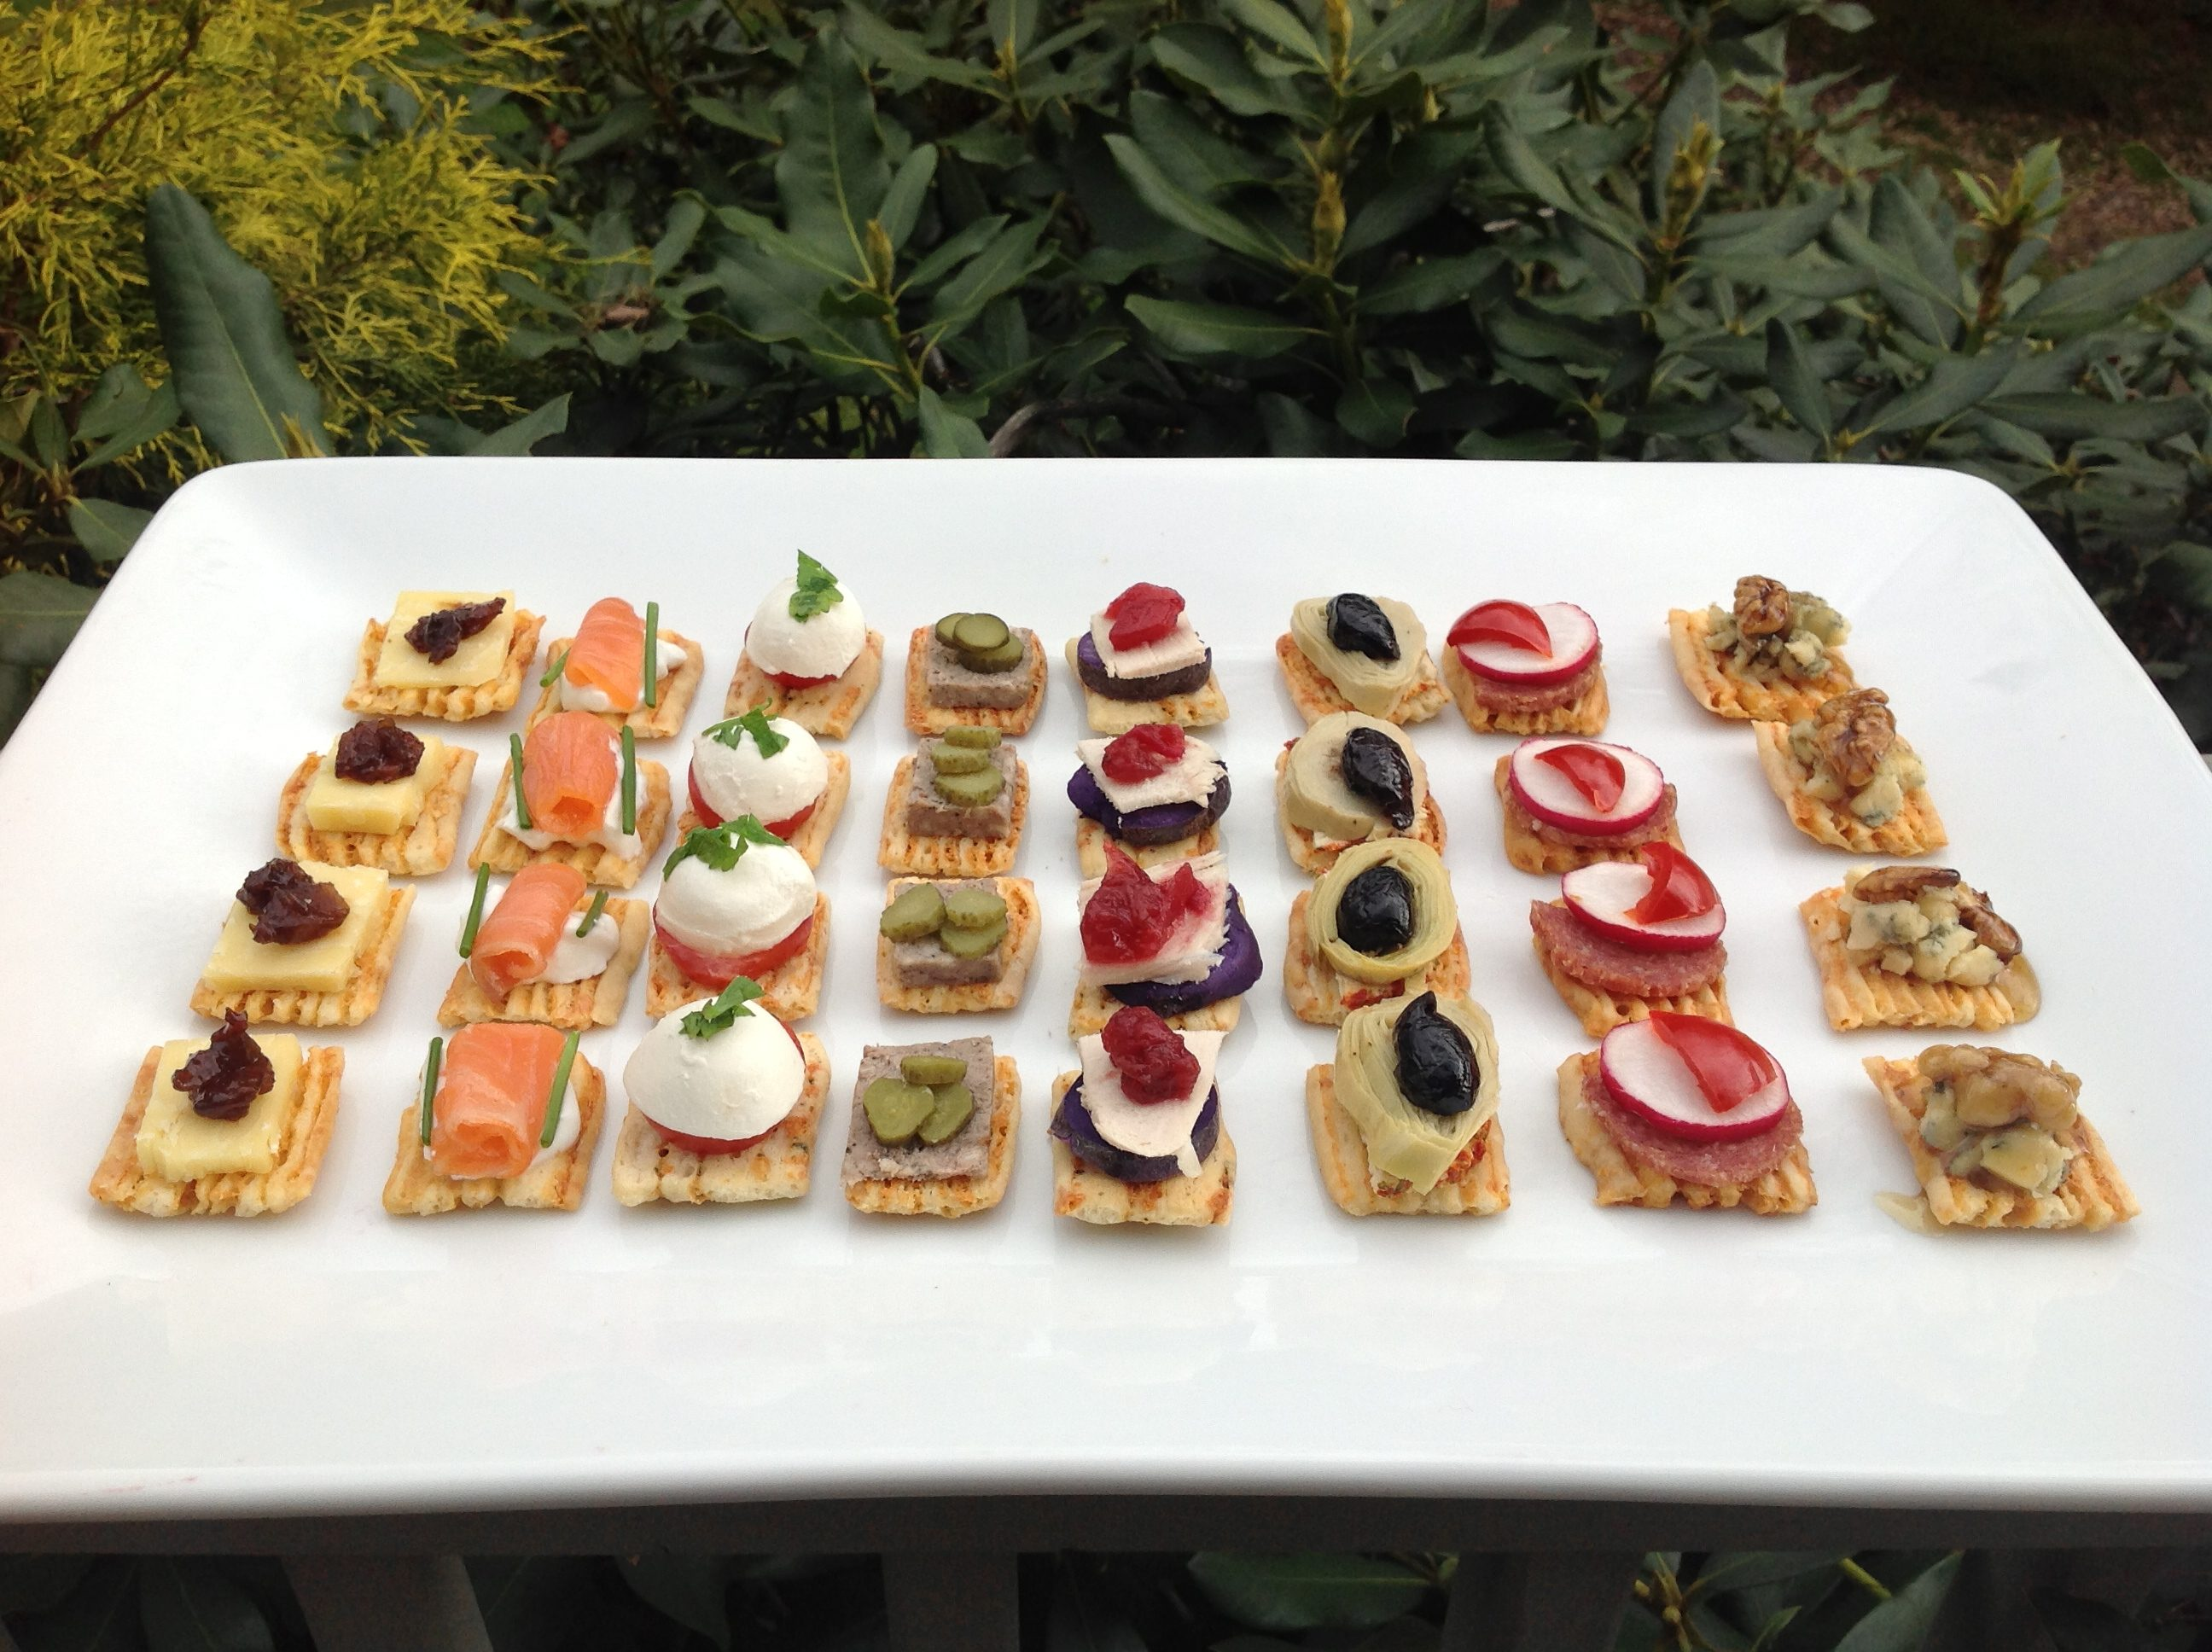 TASTY TUESDAY: SIMPLE PARTY PLEASERS